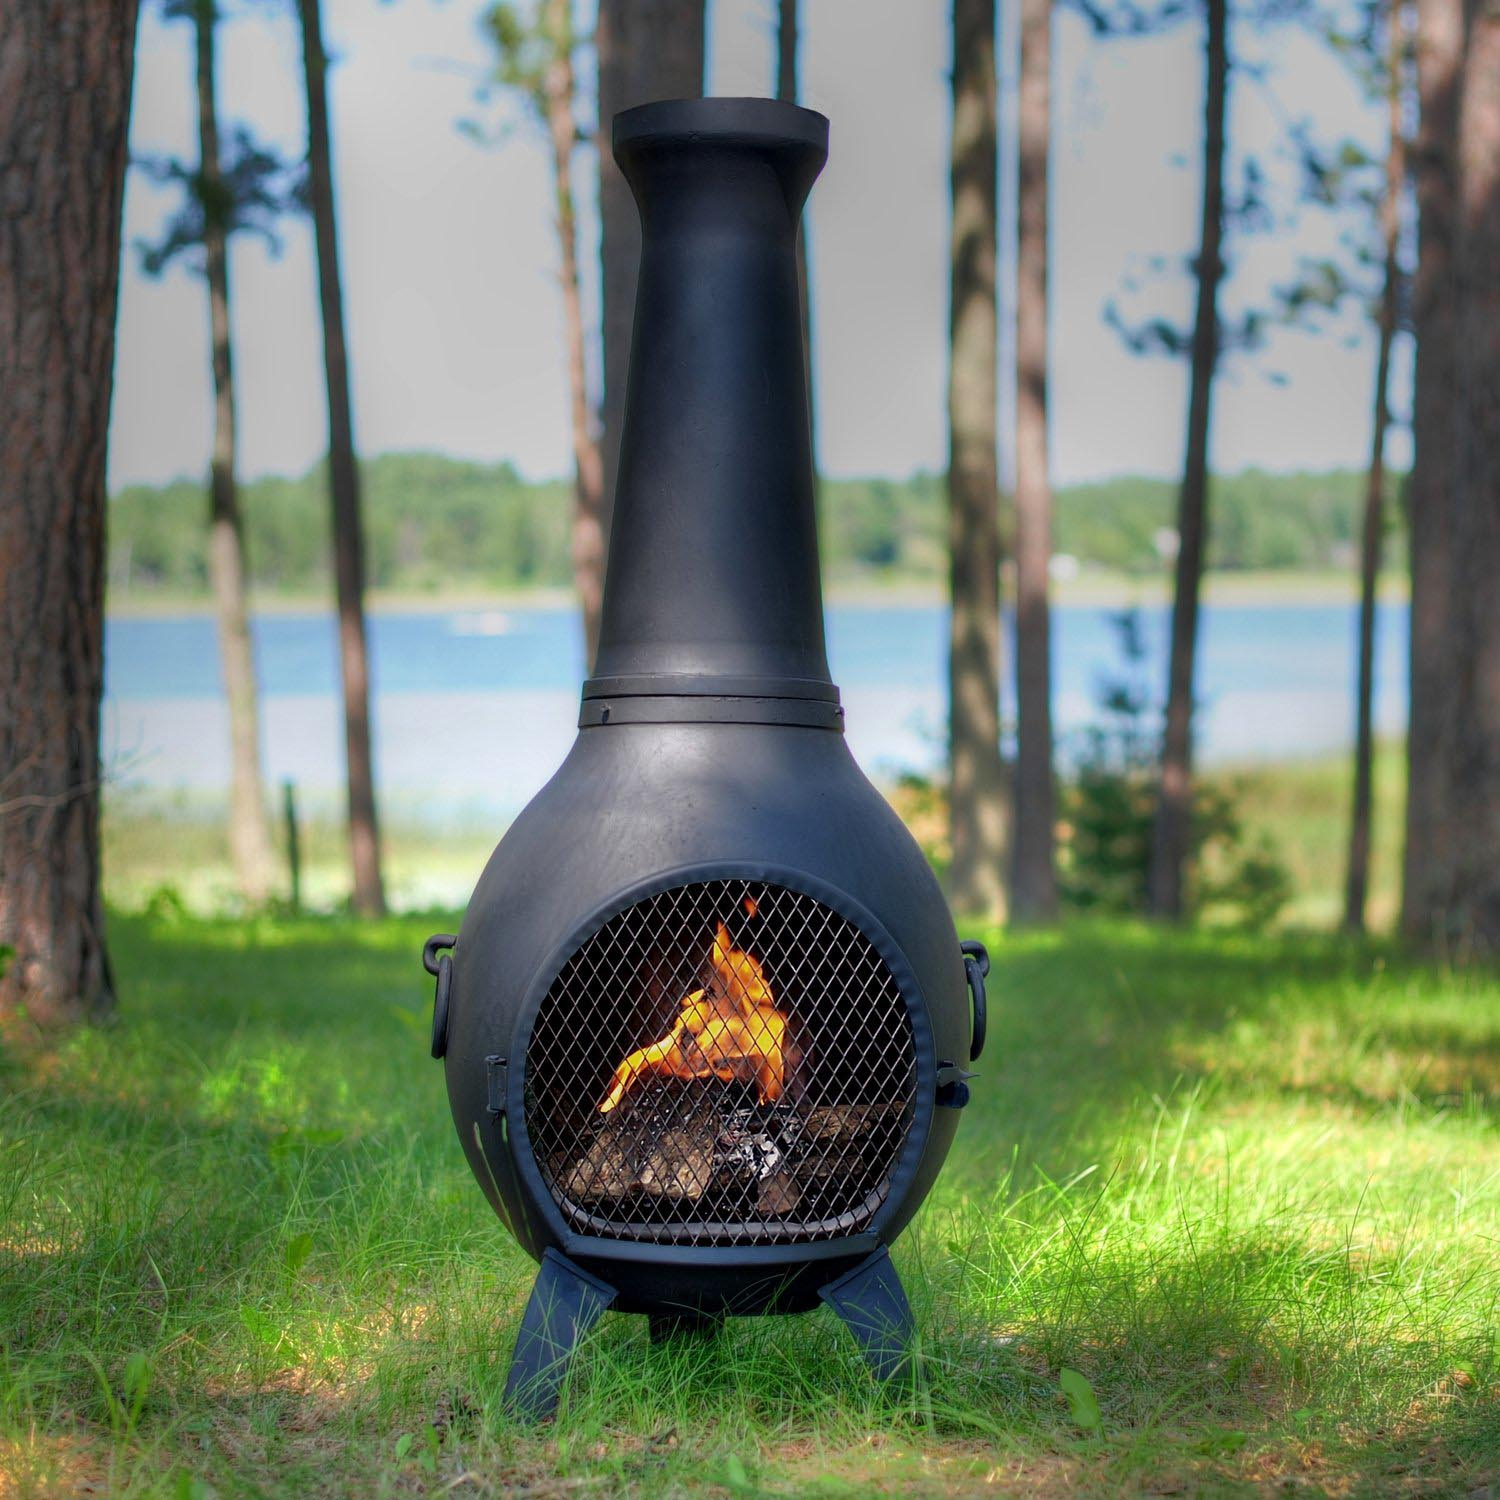 Portable Fire Pit With Chimney • Knobs Ideas Site